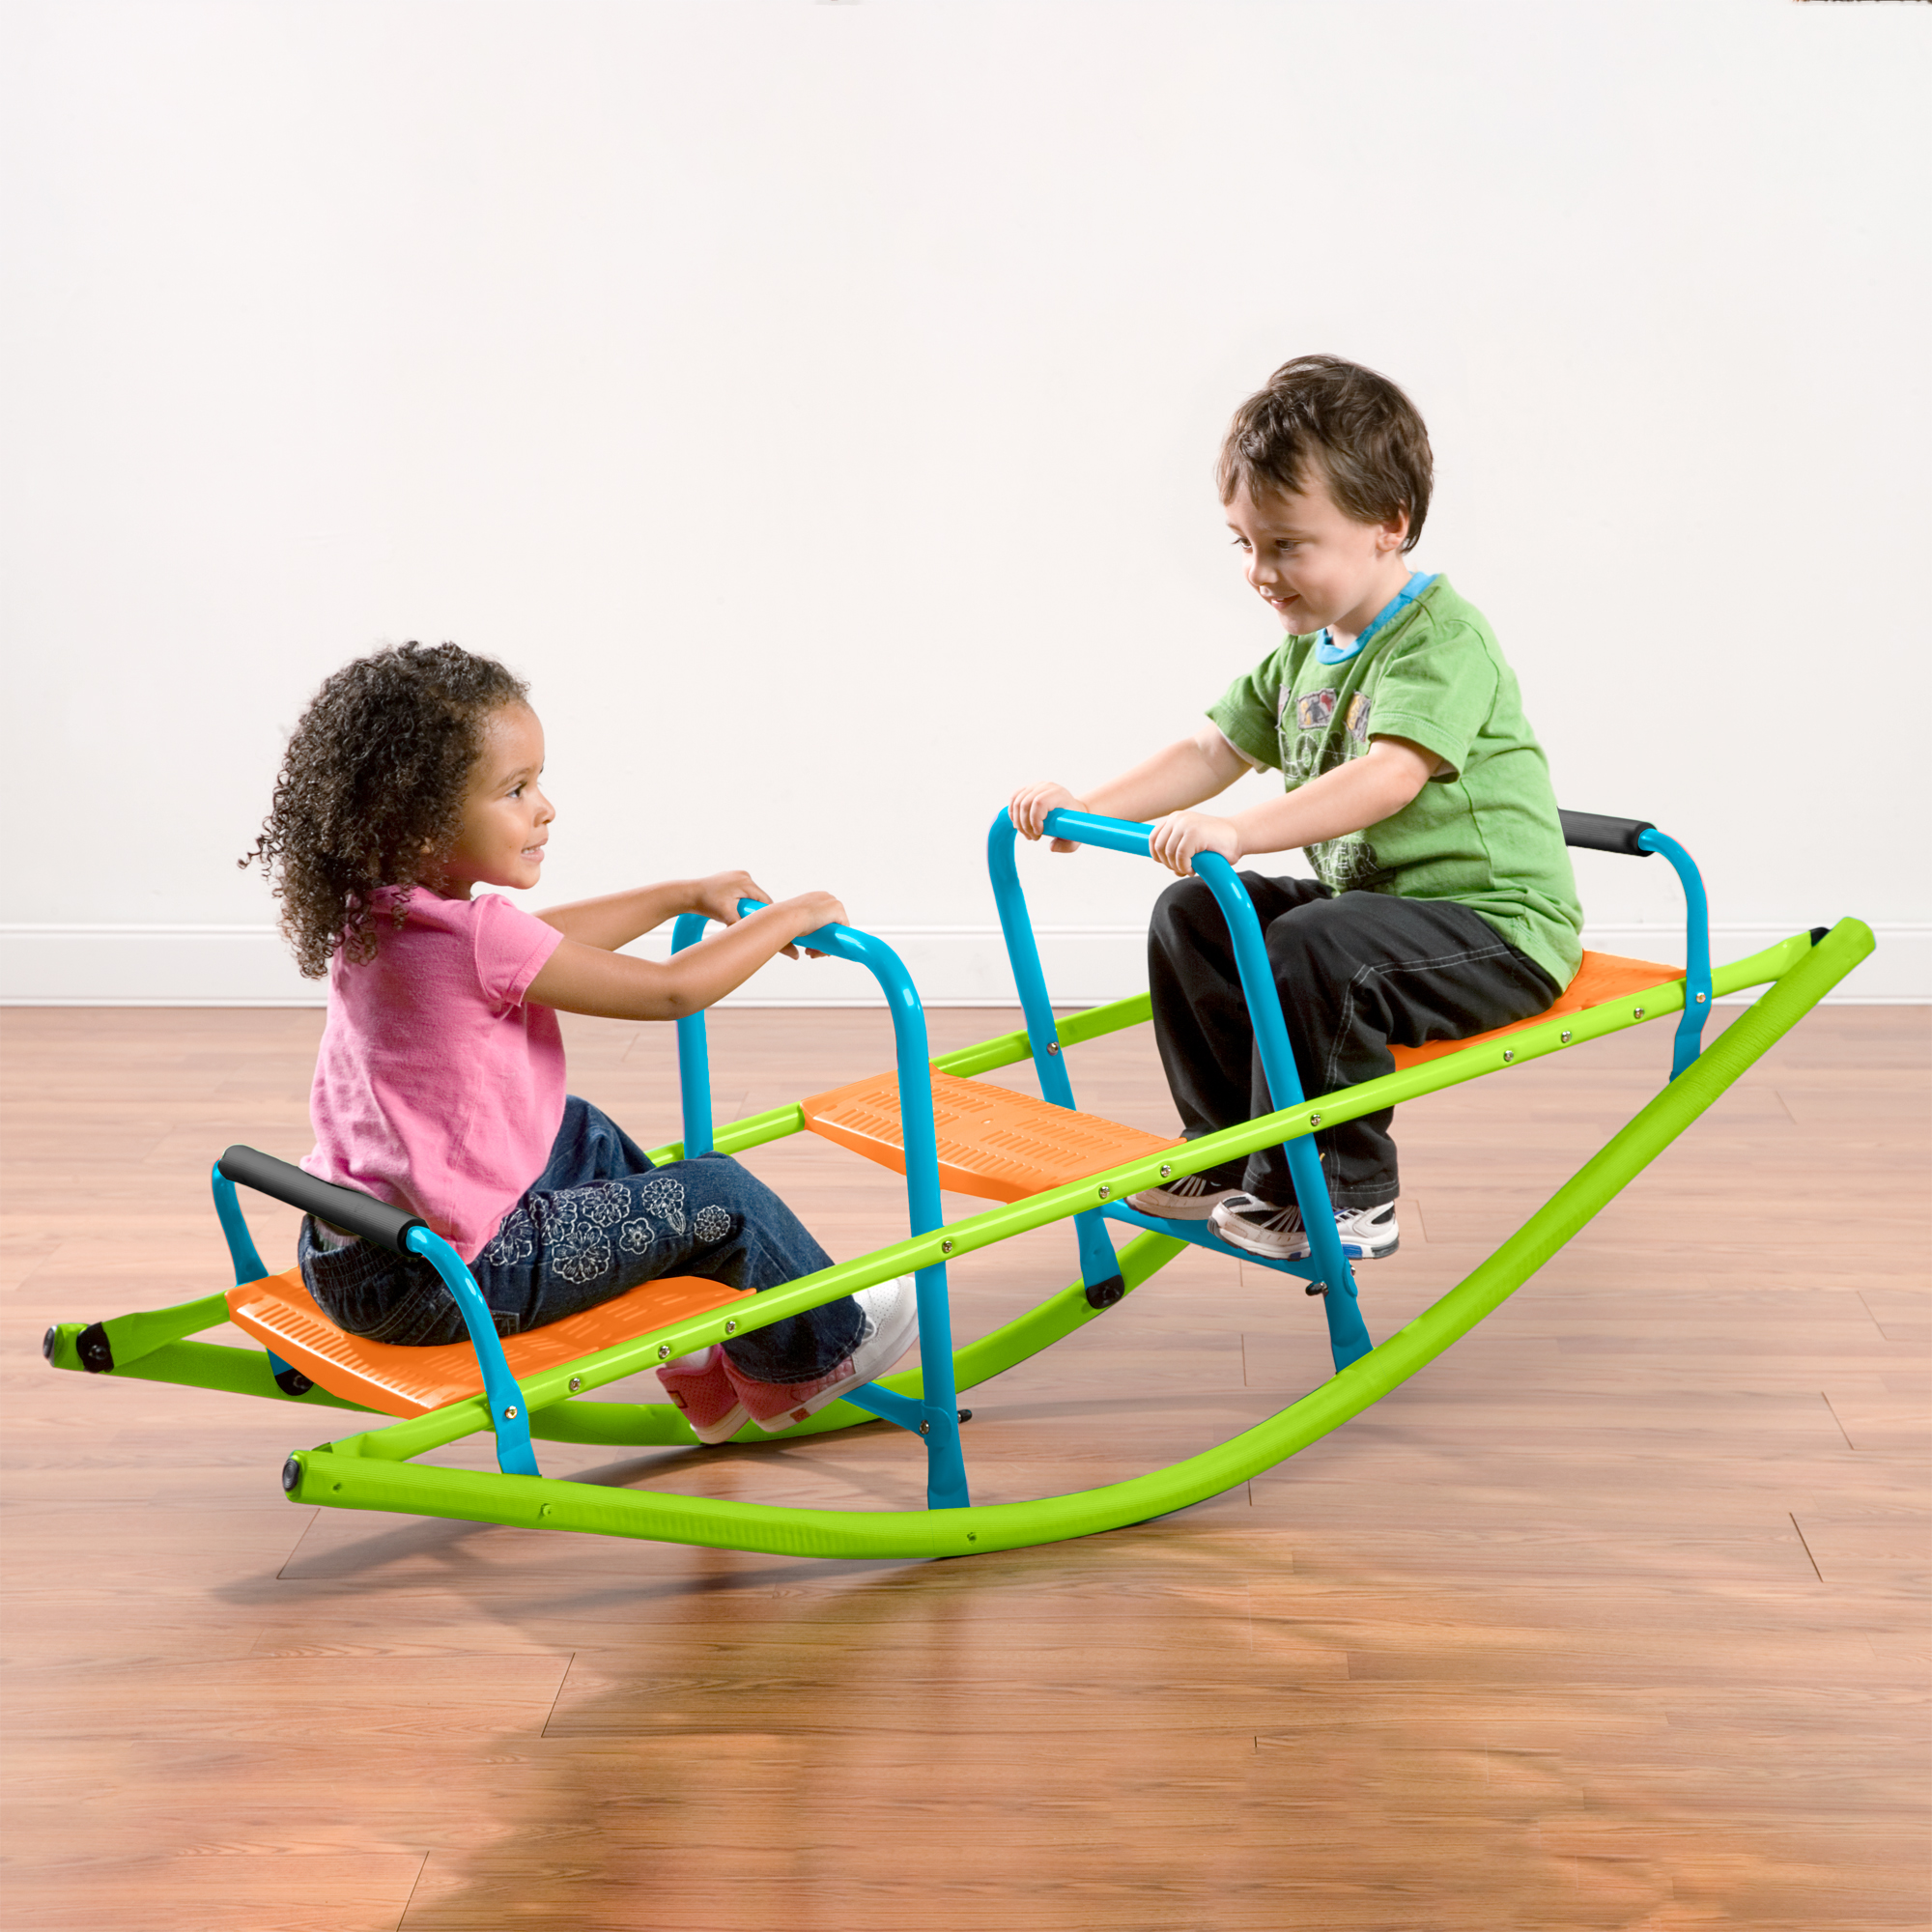 4_Pure-Fun-9306RS-Kids-Rocker-See-Saw-Indoor